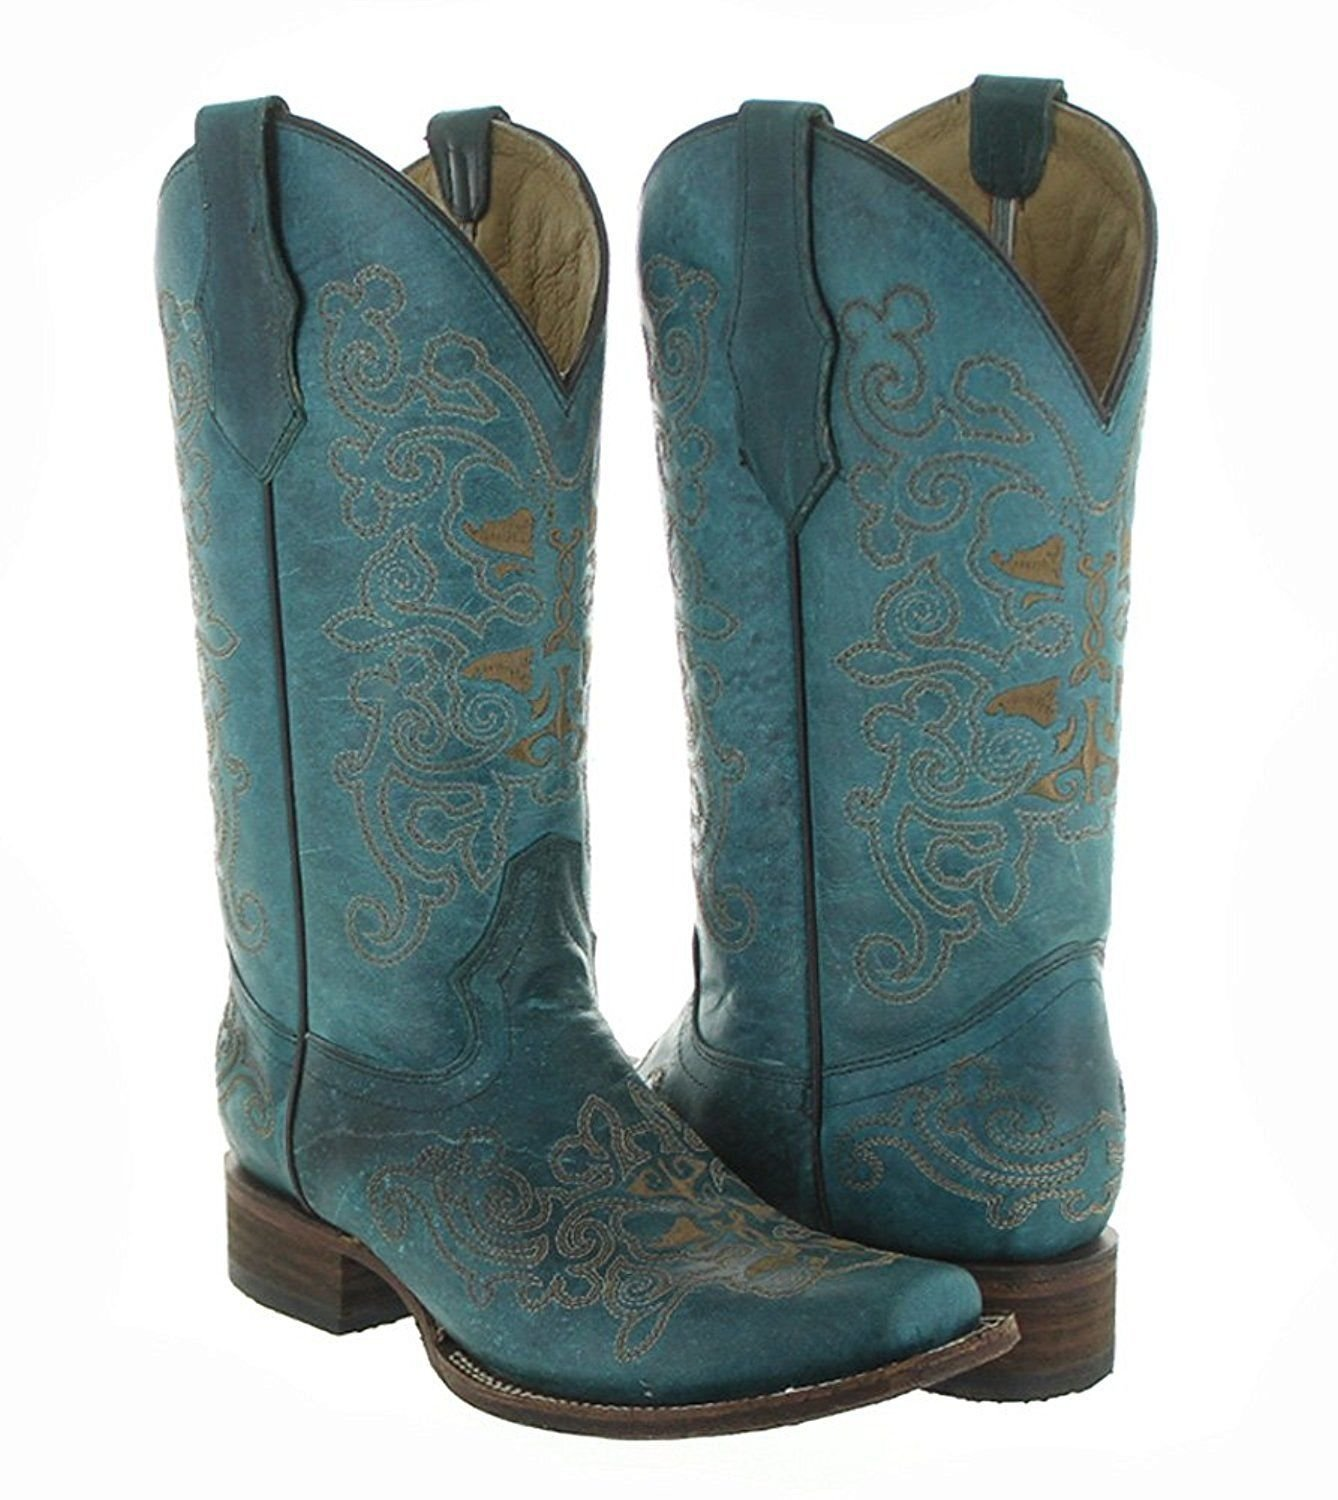 cfbae37a1f8 Details about Circle G by Corral Women's Turquoise Embroidered Square Toe  Cowgirl Boots L5135